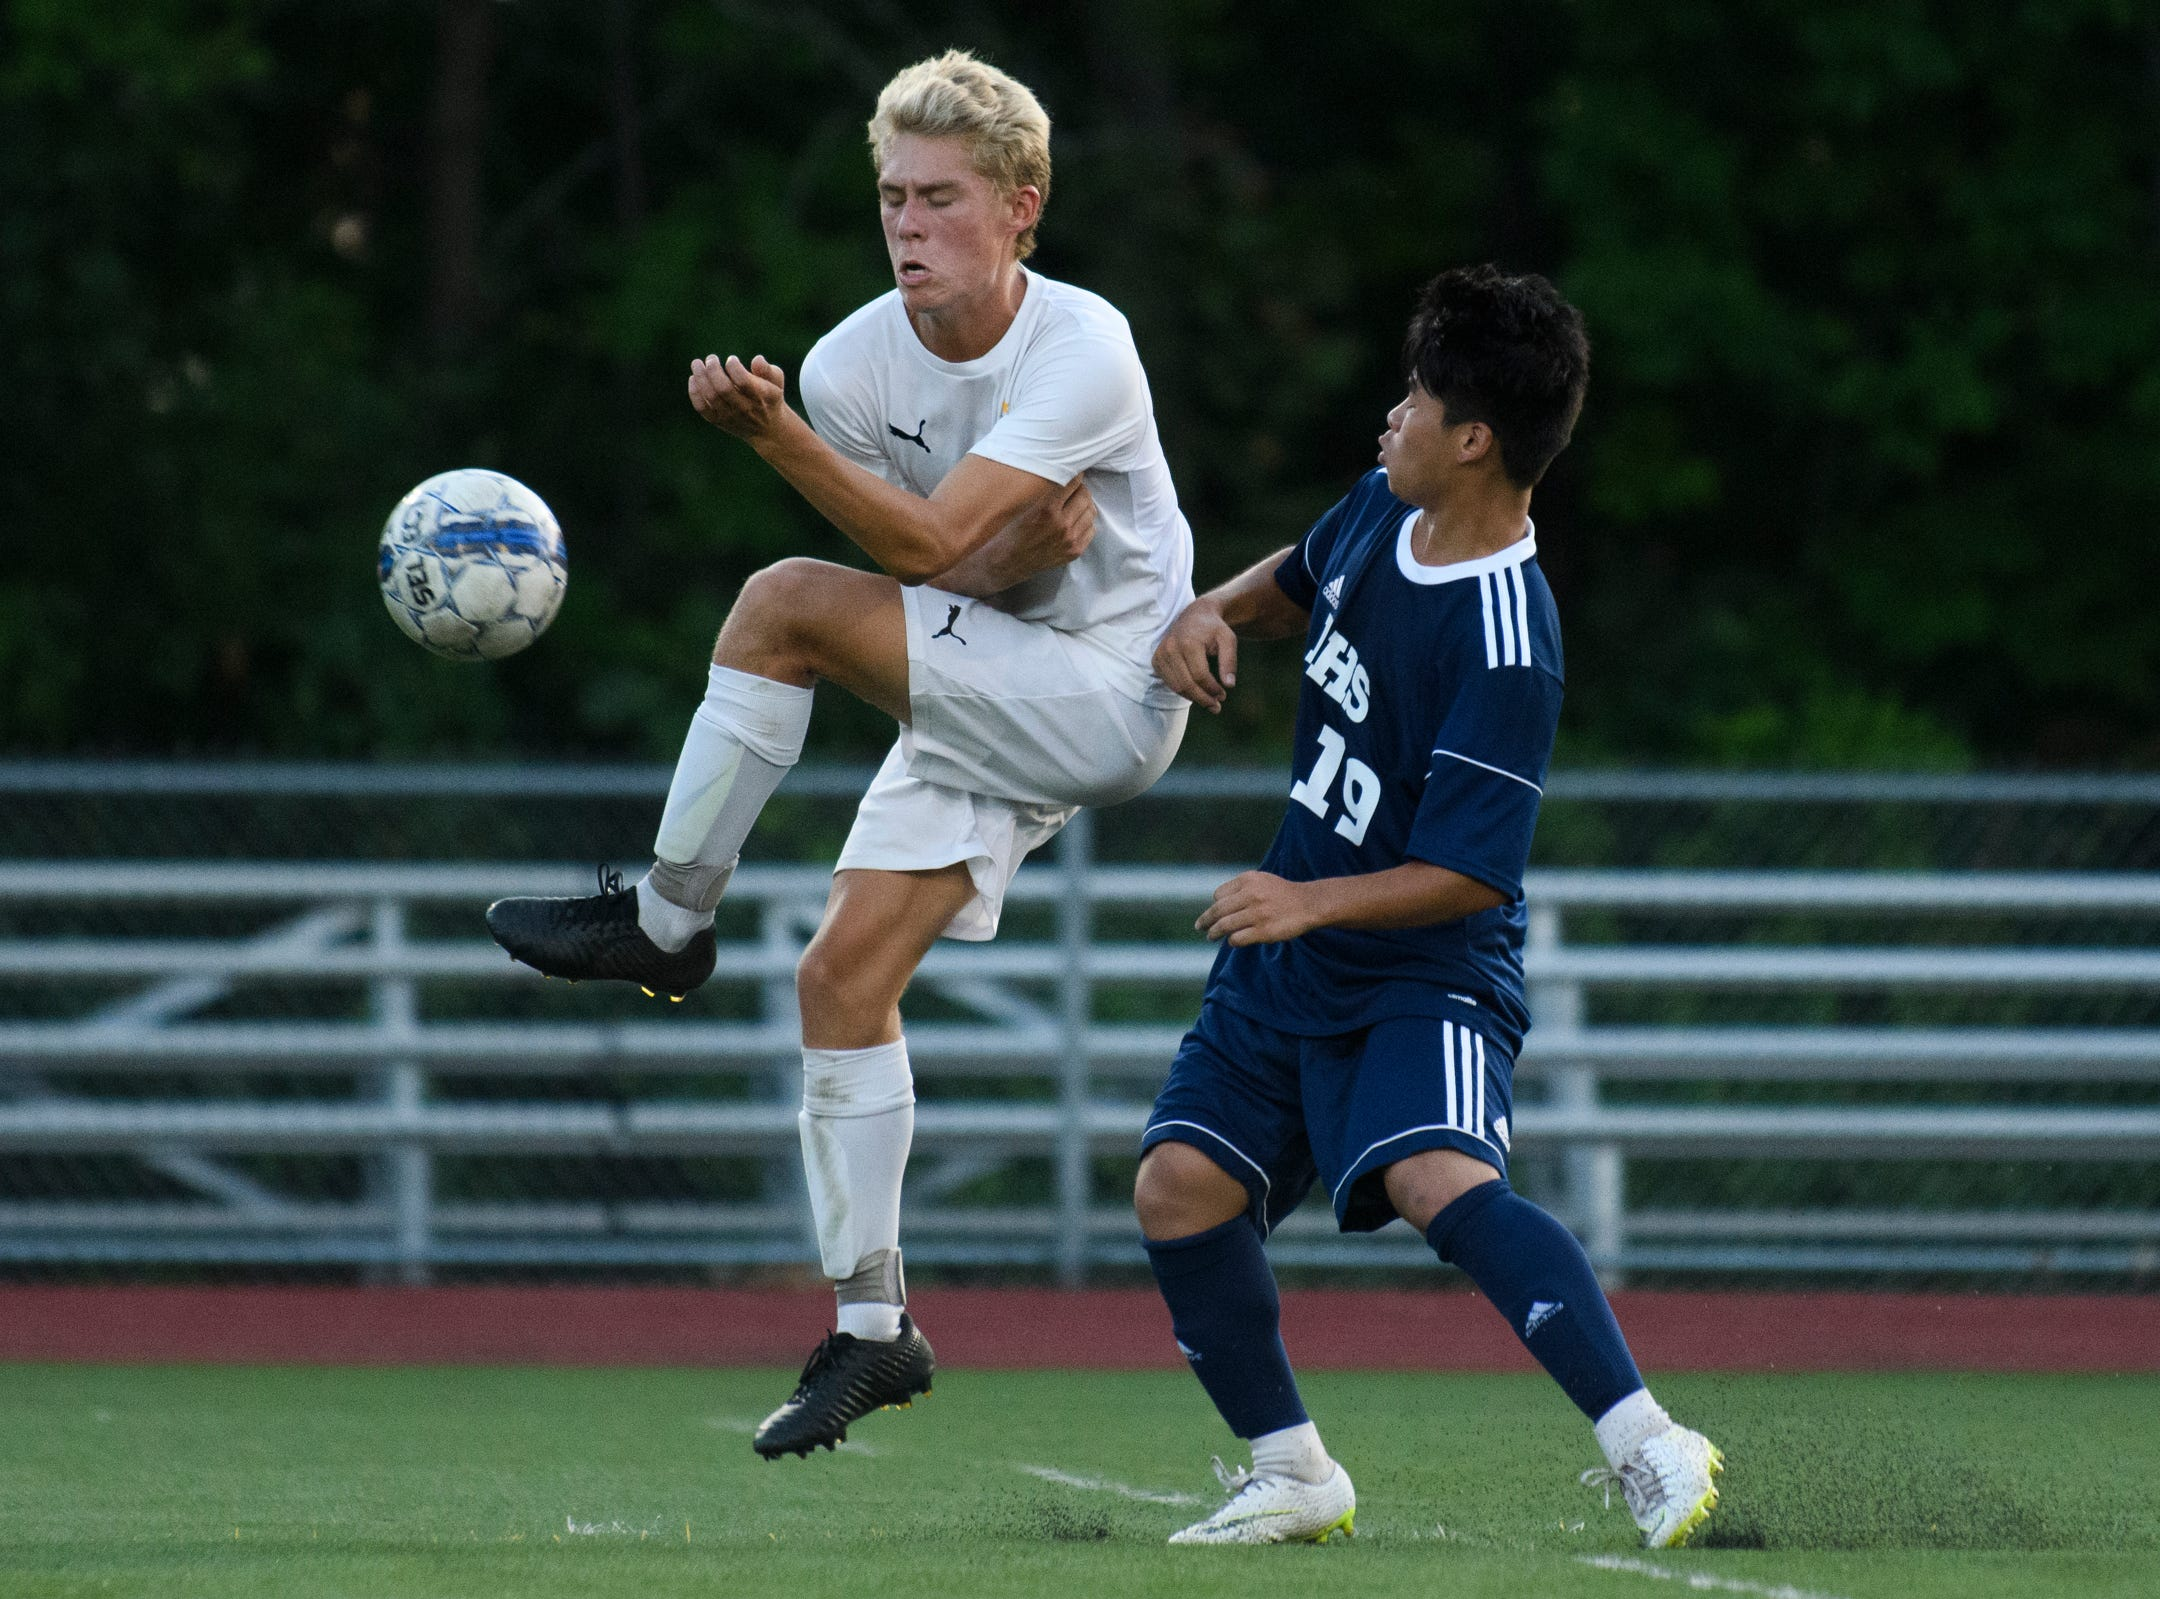 Stowe's Jack Seivwright (10) and Burlington's Roman Magar (19) battle for the ball during the boys soccer game between Stowe and Burlington at Buck Hard field on Wednesday night September 5, 2018 in Burlington.